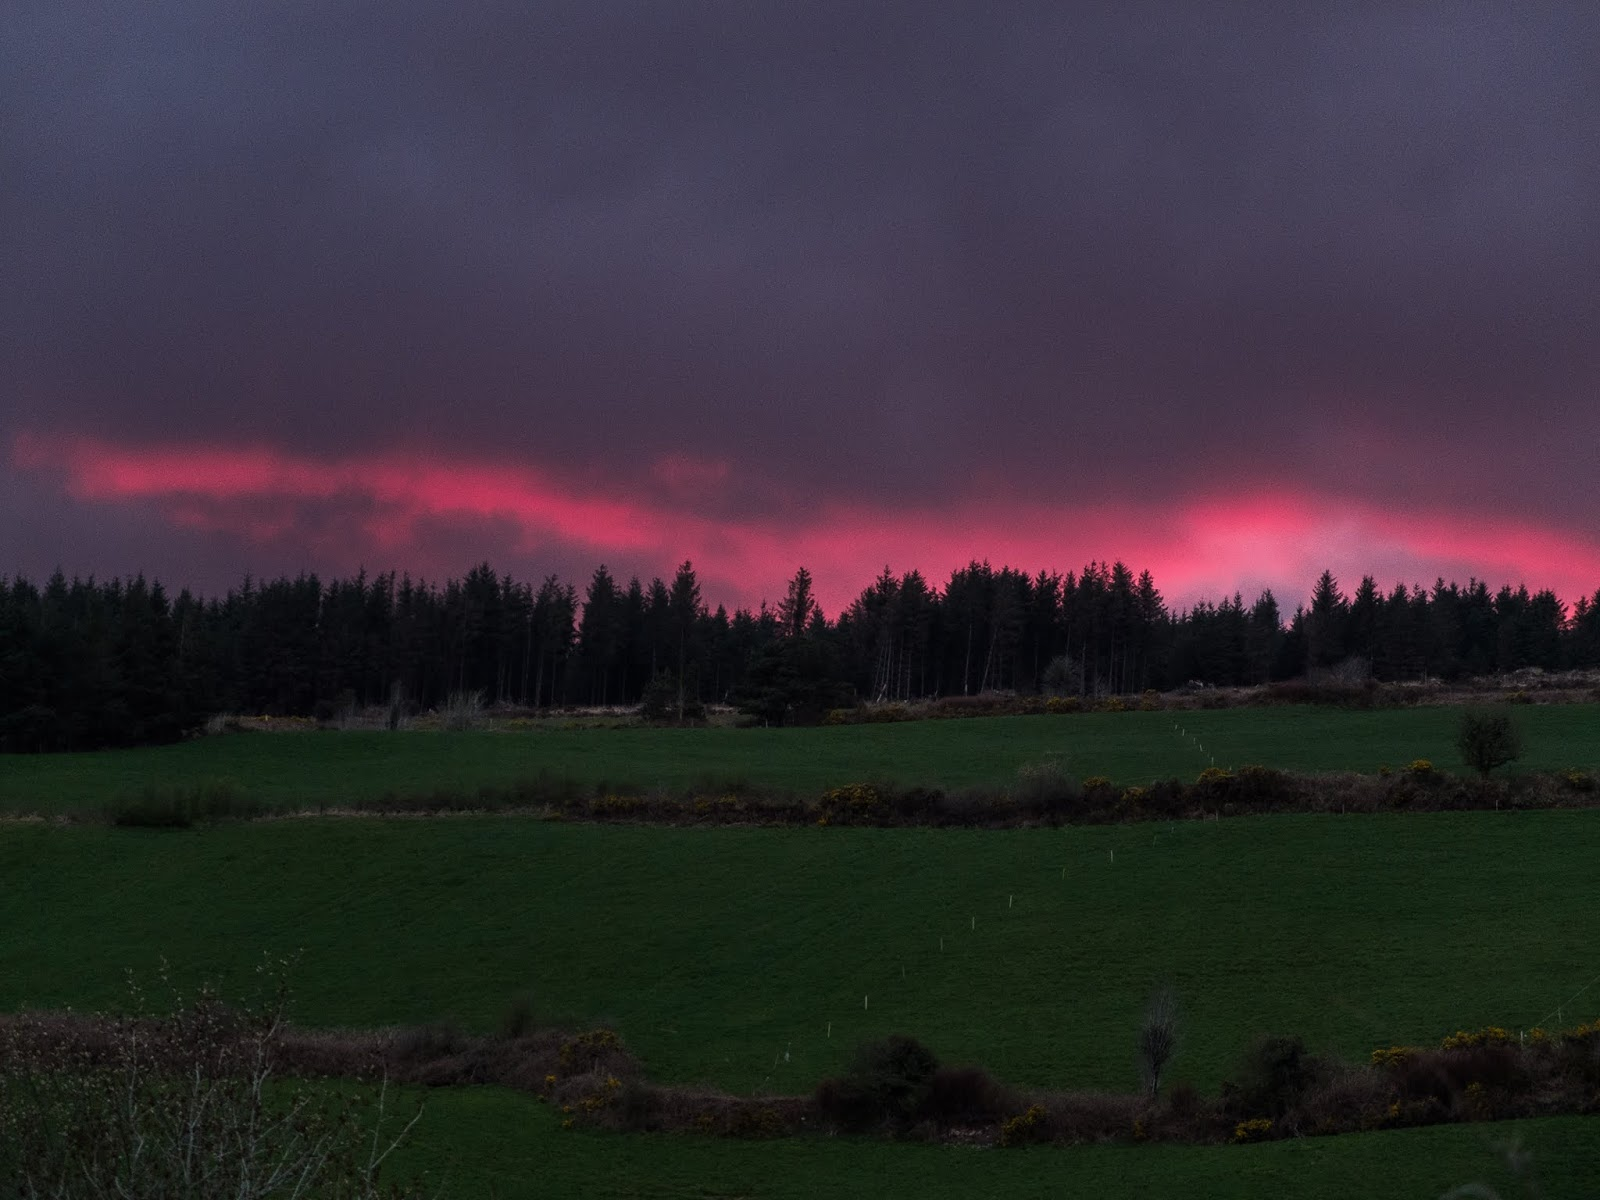 A pink ribbon of light in dark clouds after sunset over a forest on a hillside.